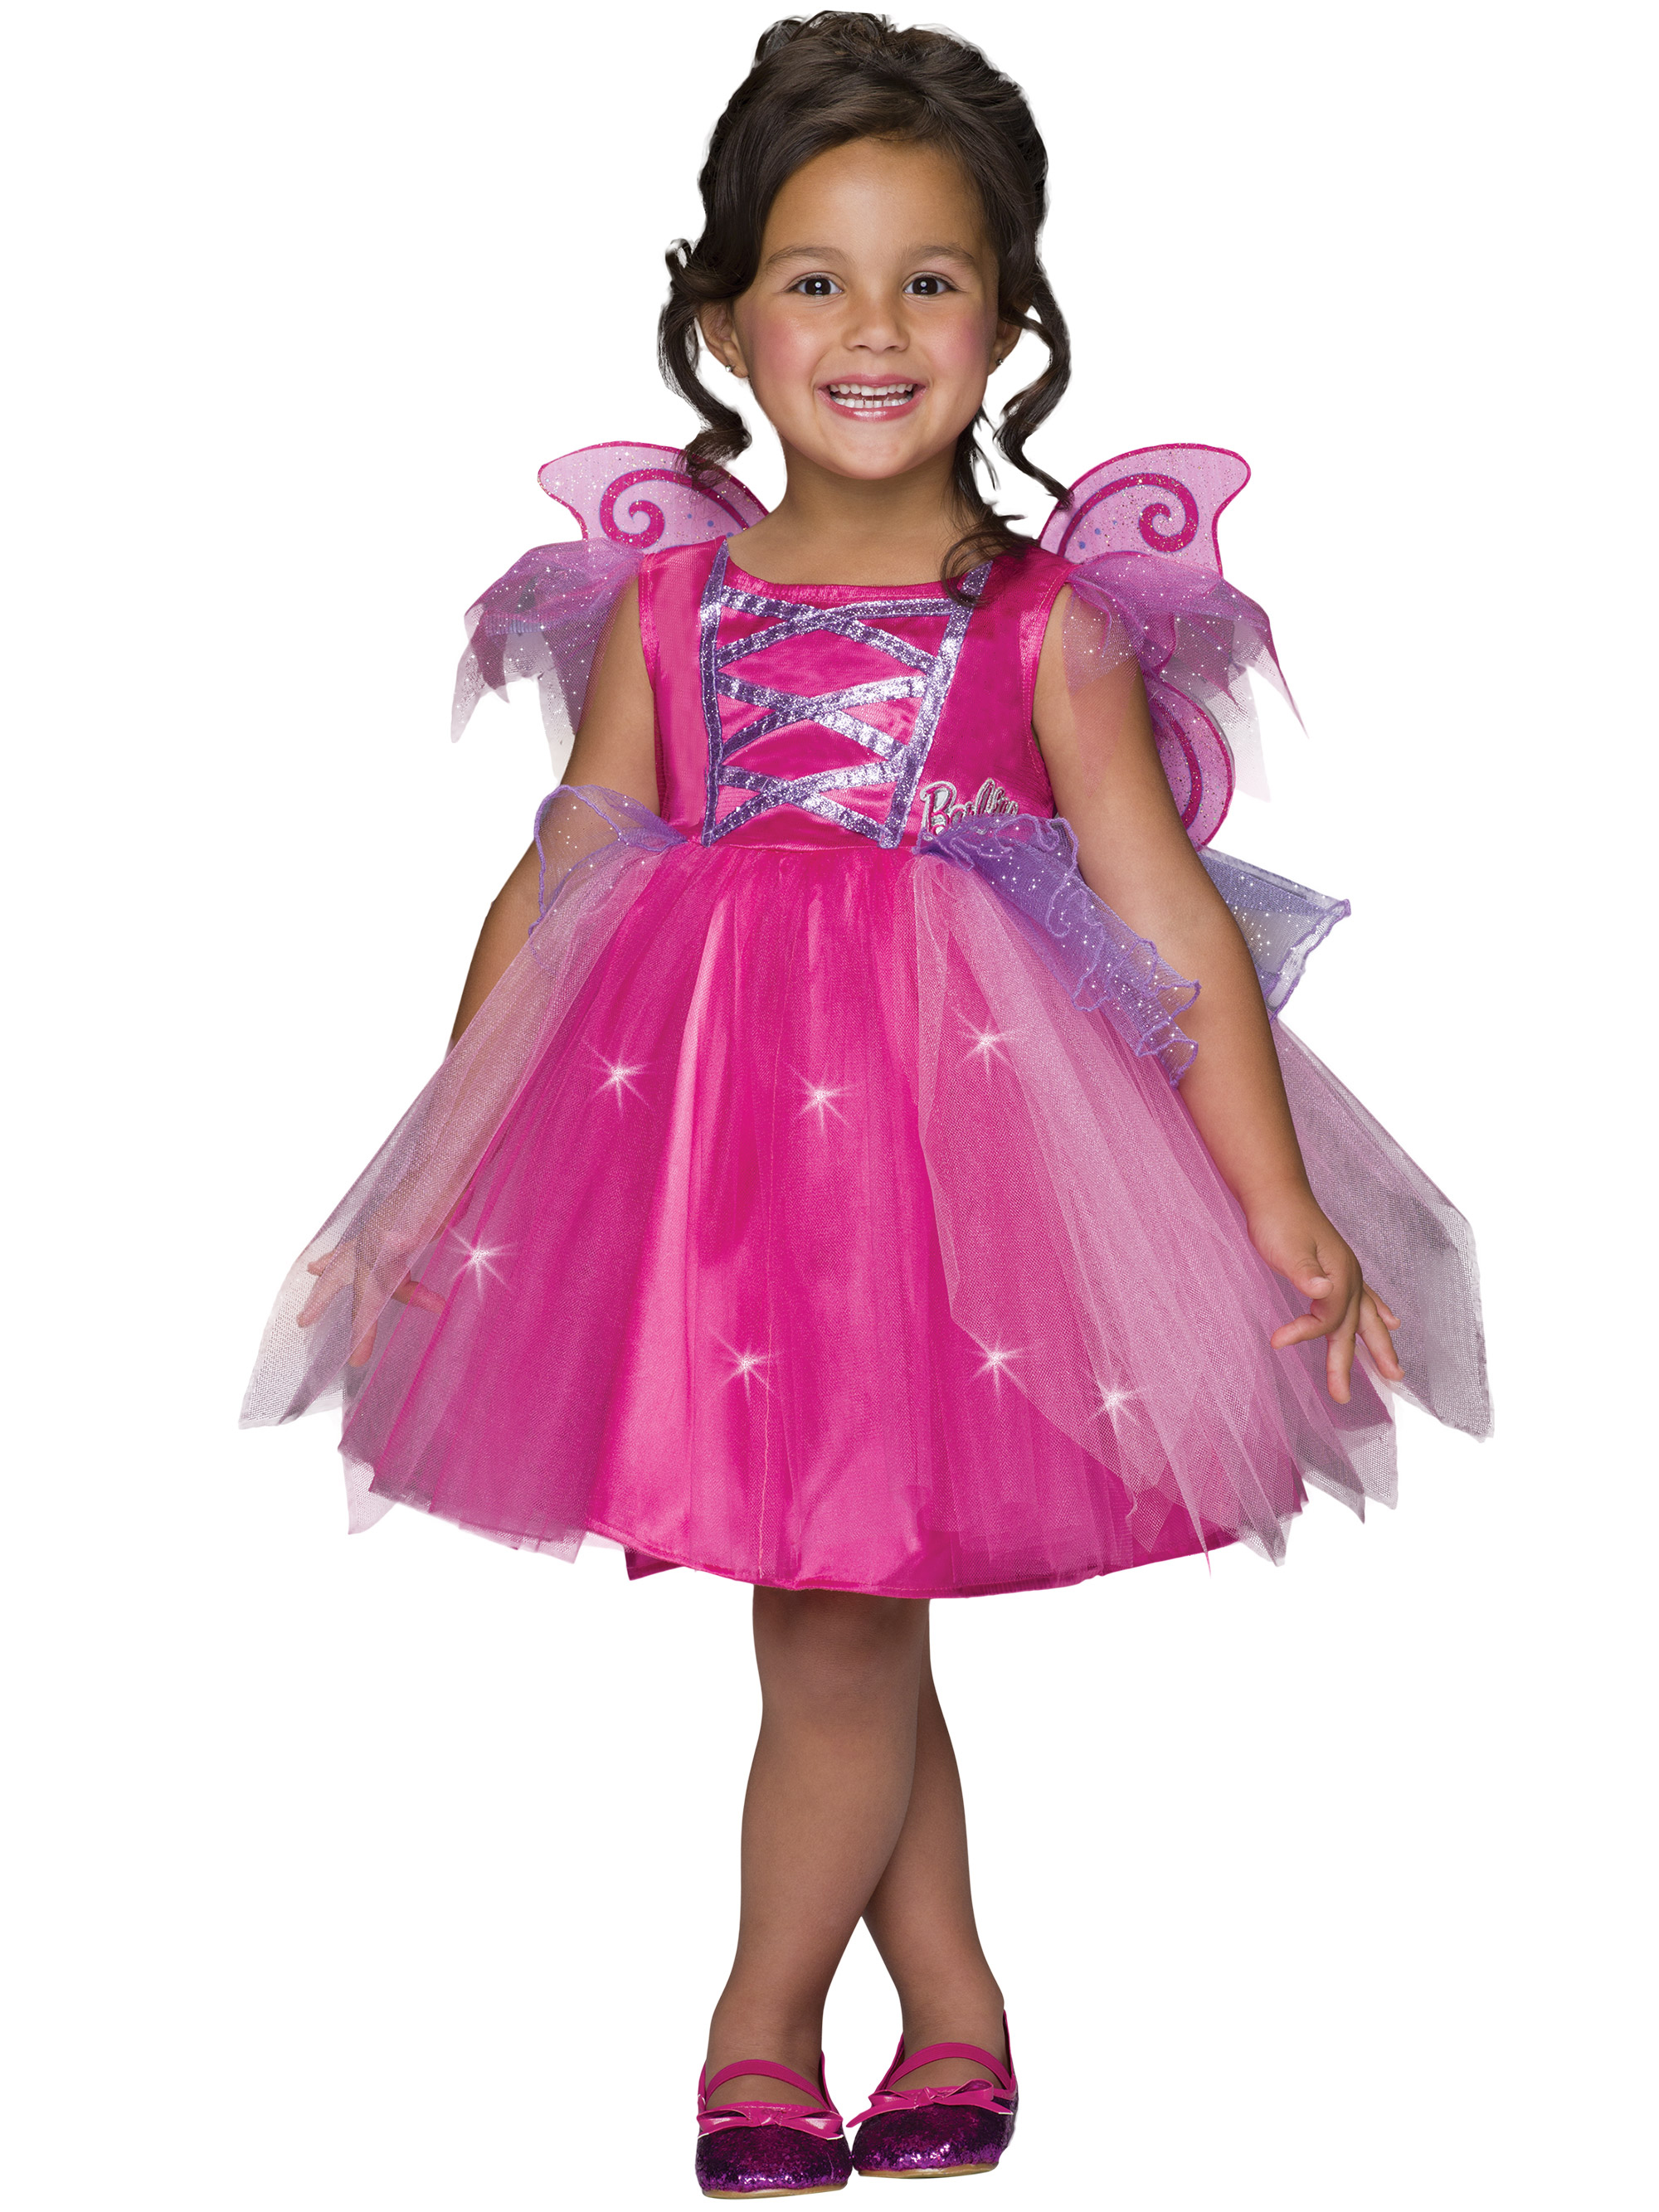 Rubie's Barbie Costume For Kids